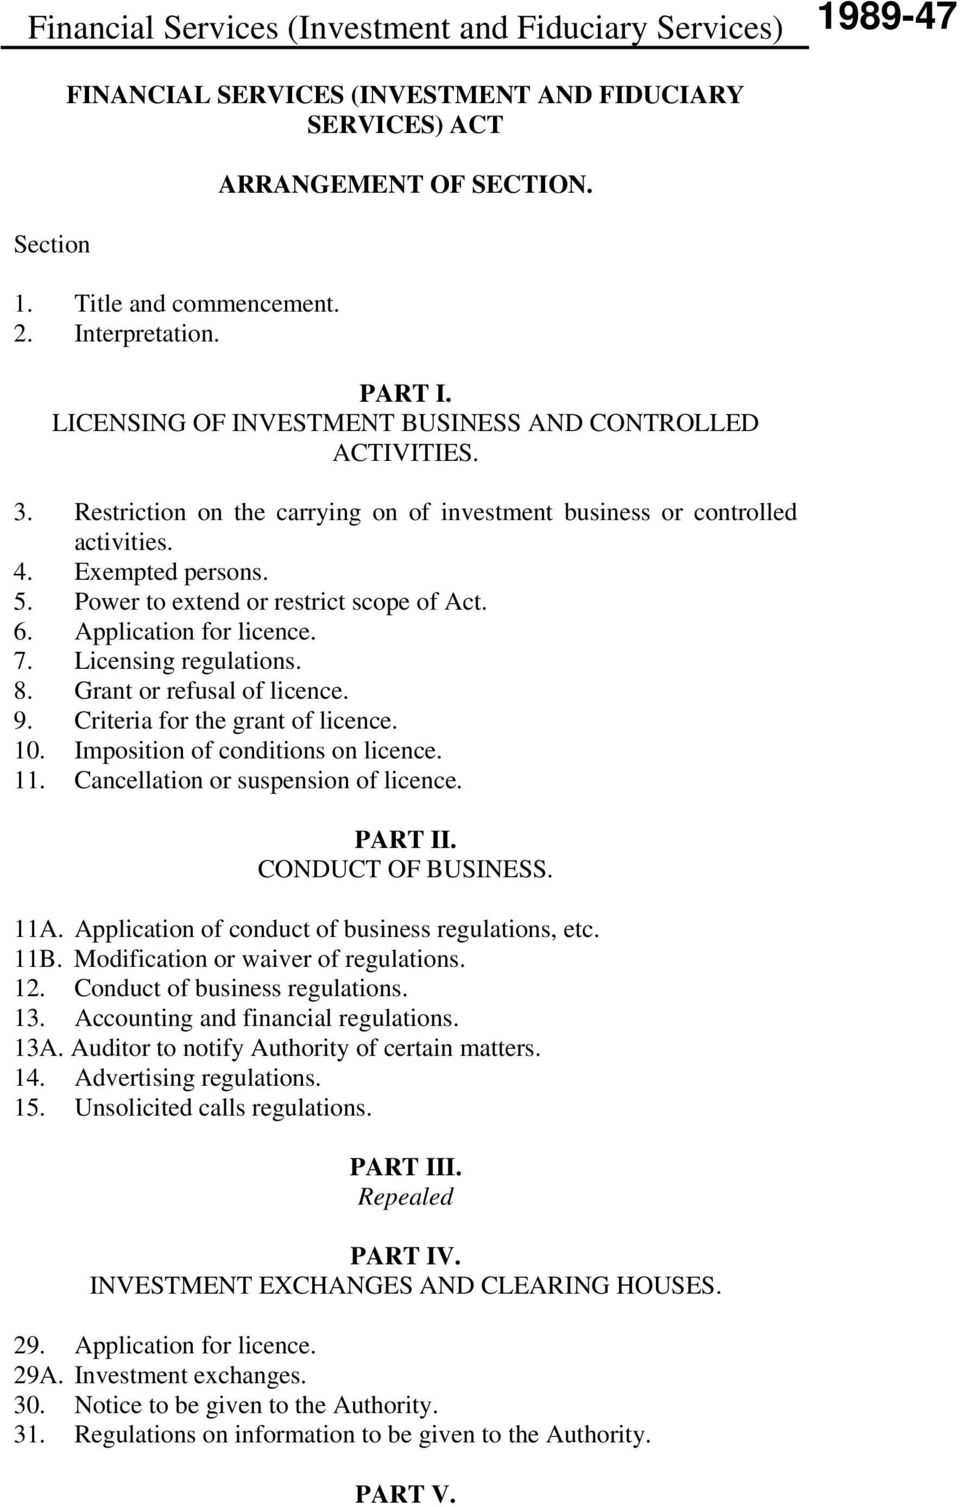 Power to extend or restrict scope of Act. 6. Application for licence. 7. Licensing regulations. 8. Grant or refusal of licence. 9. Criteria for the grant of licence. 10.